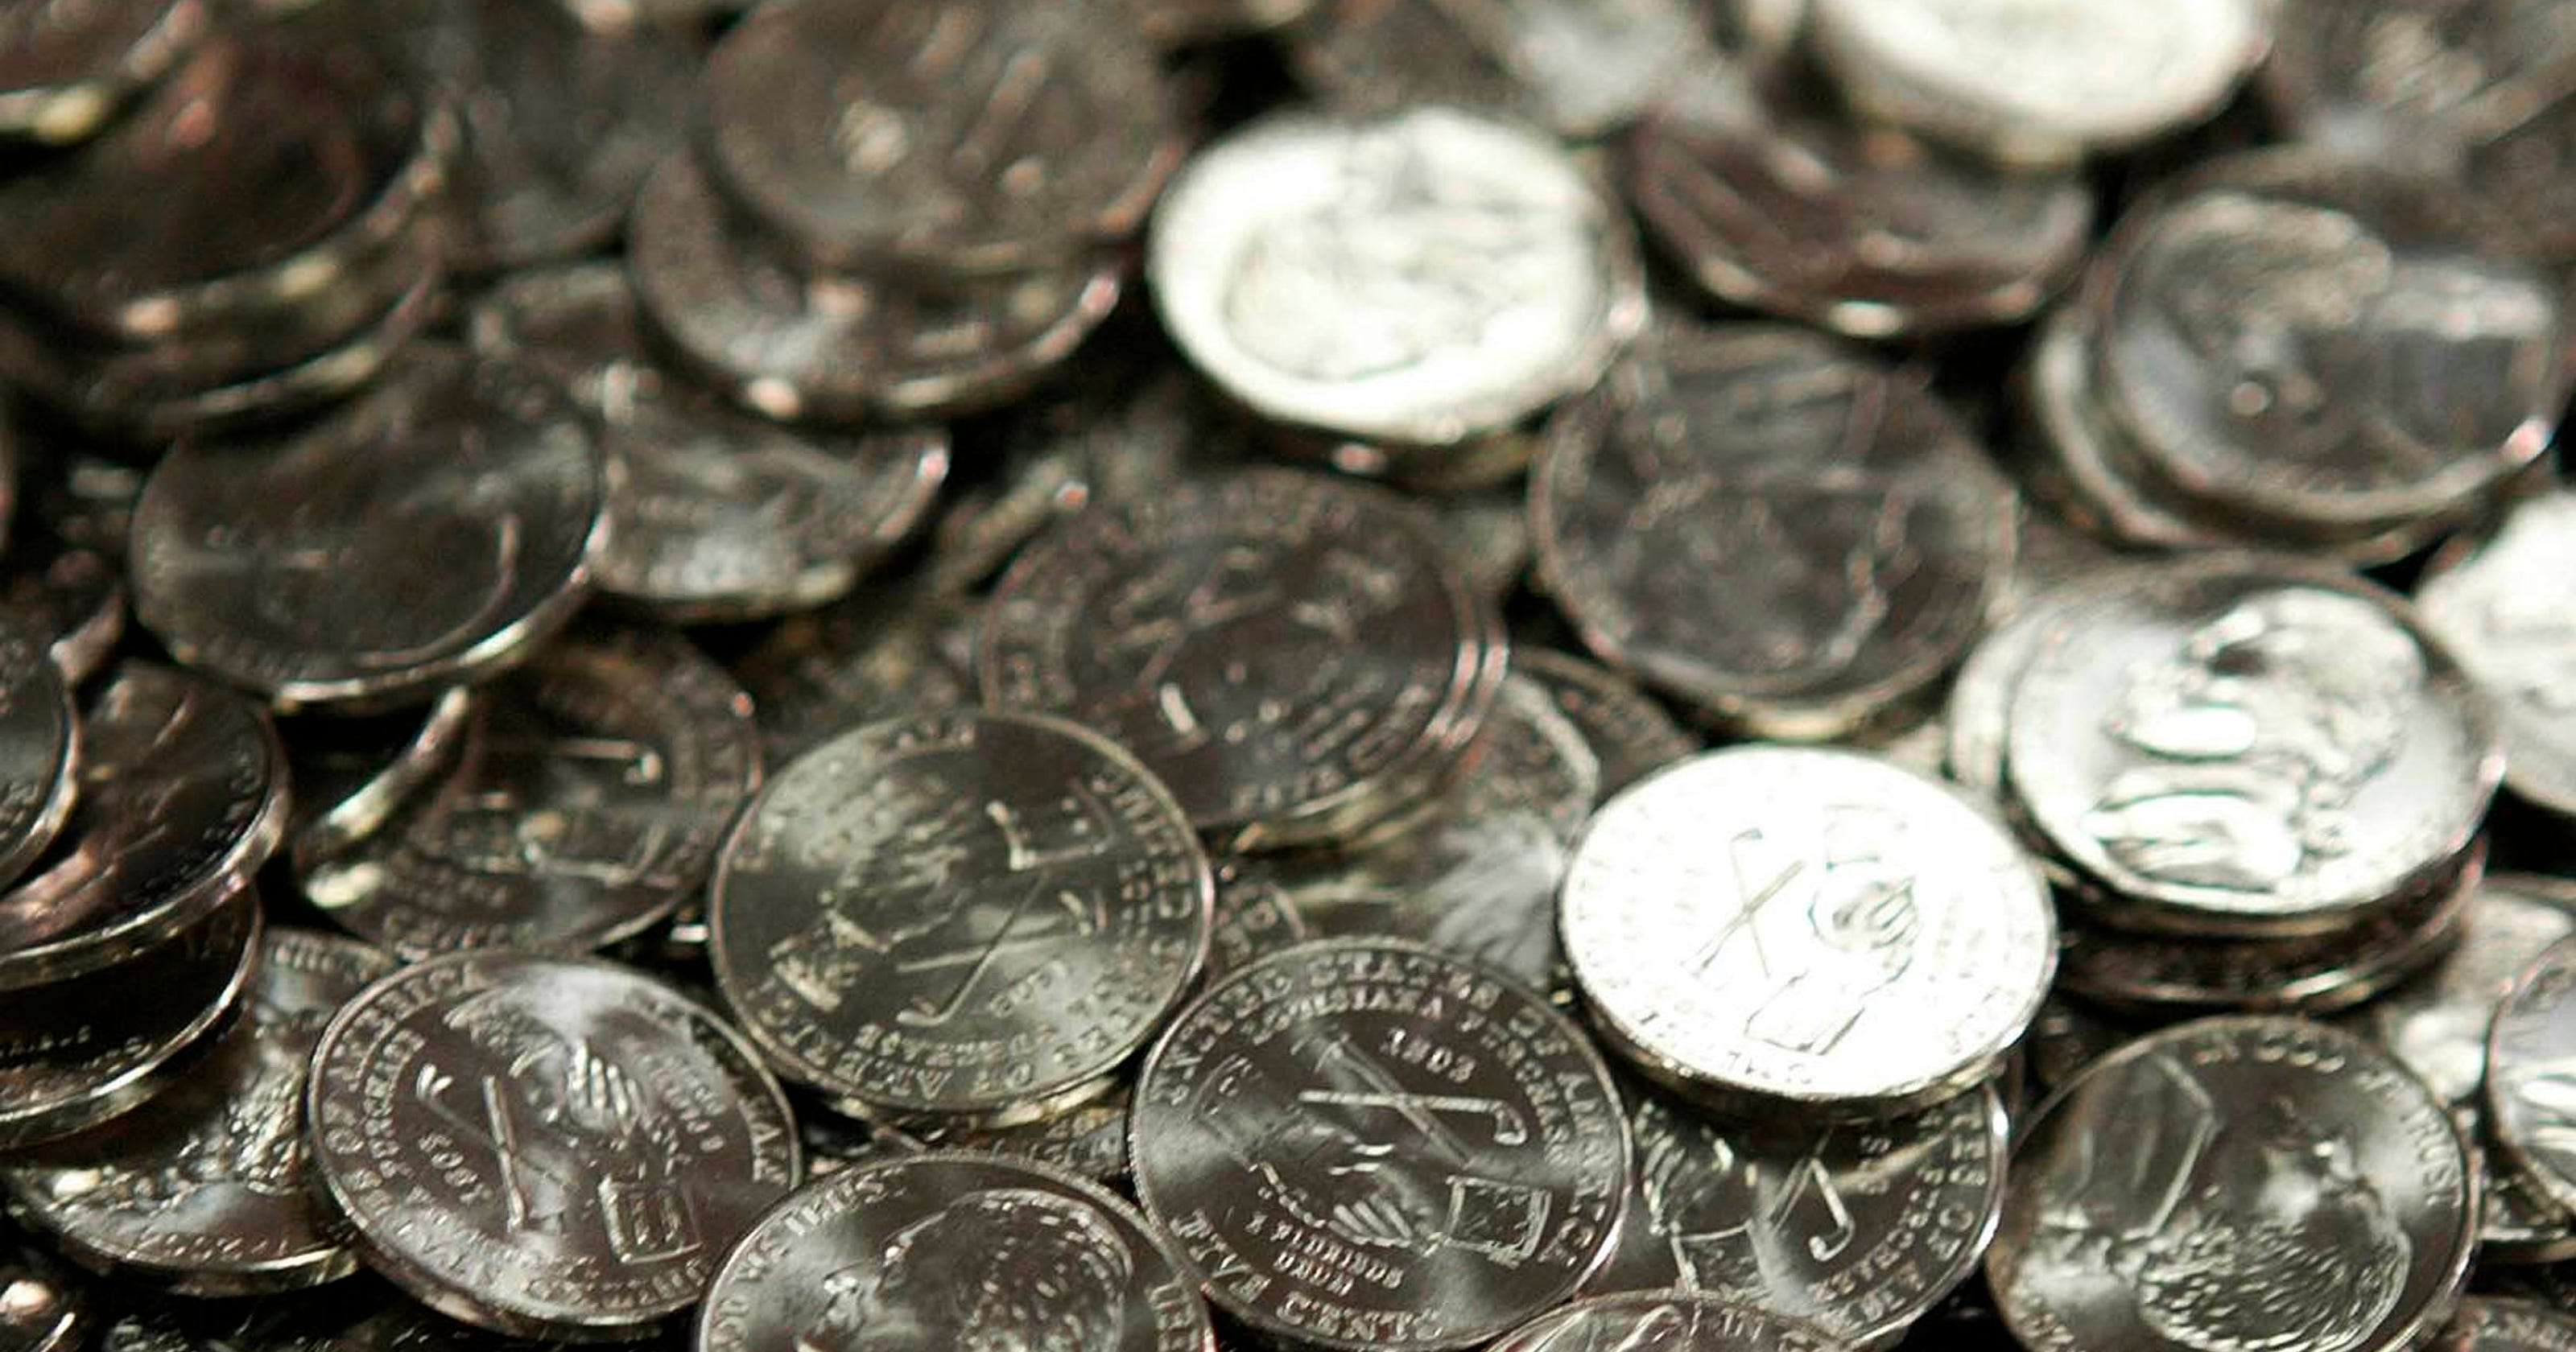 5 crazy facts about money that you may not know